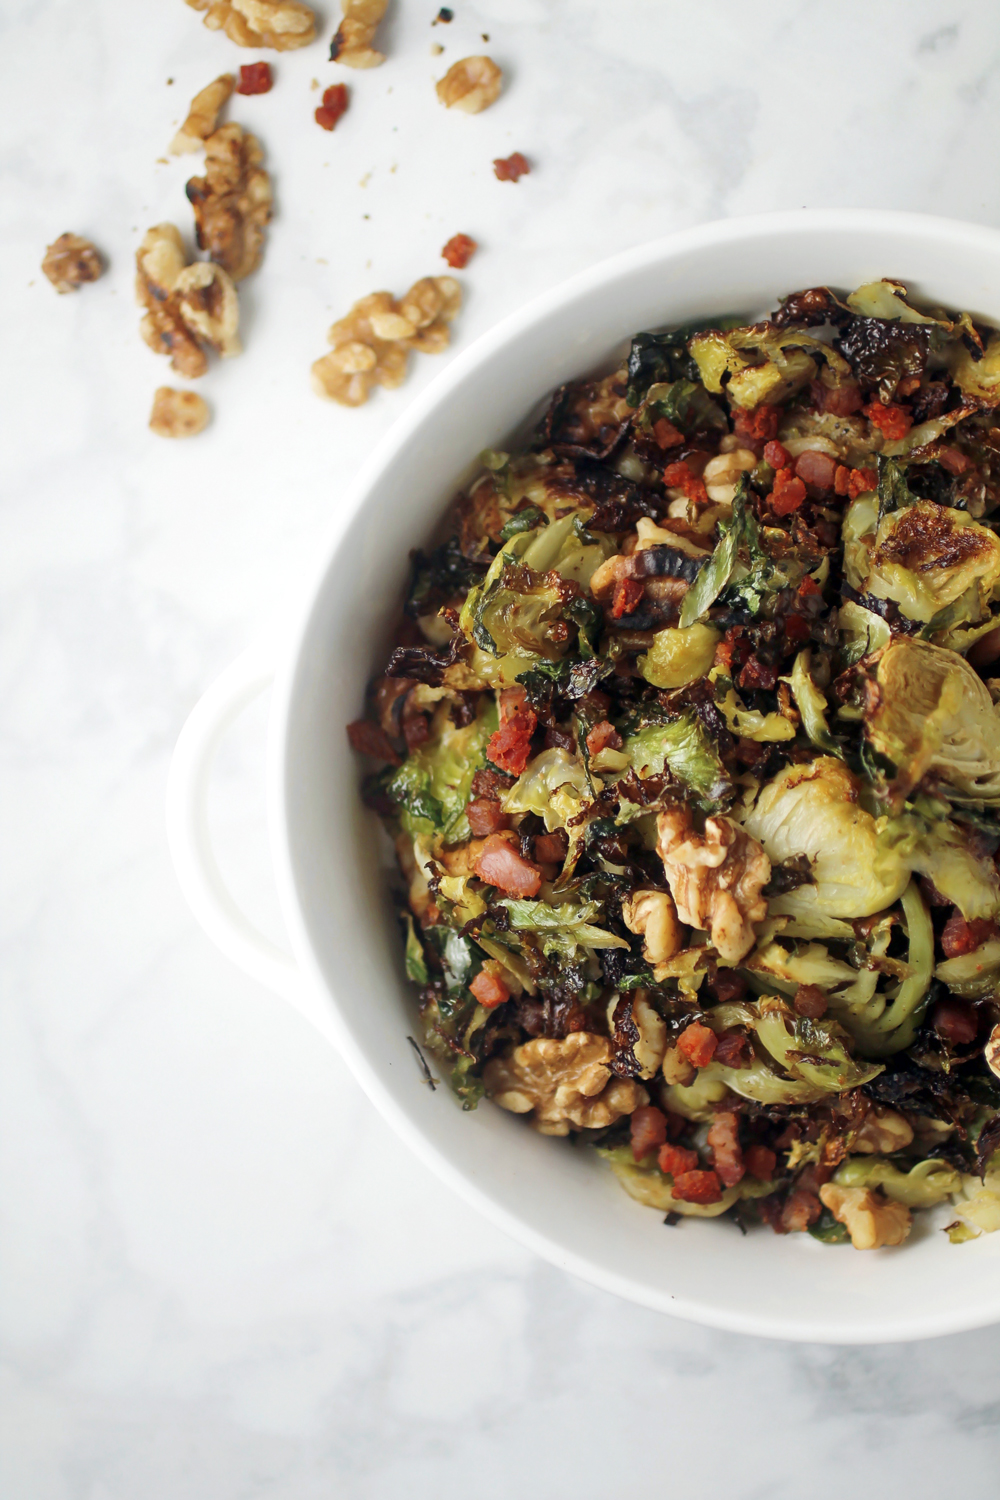 Roasted Shredded Brussels Sprouts with Pancetta and Parmesan